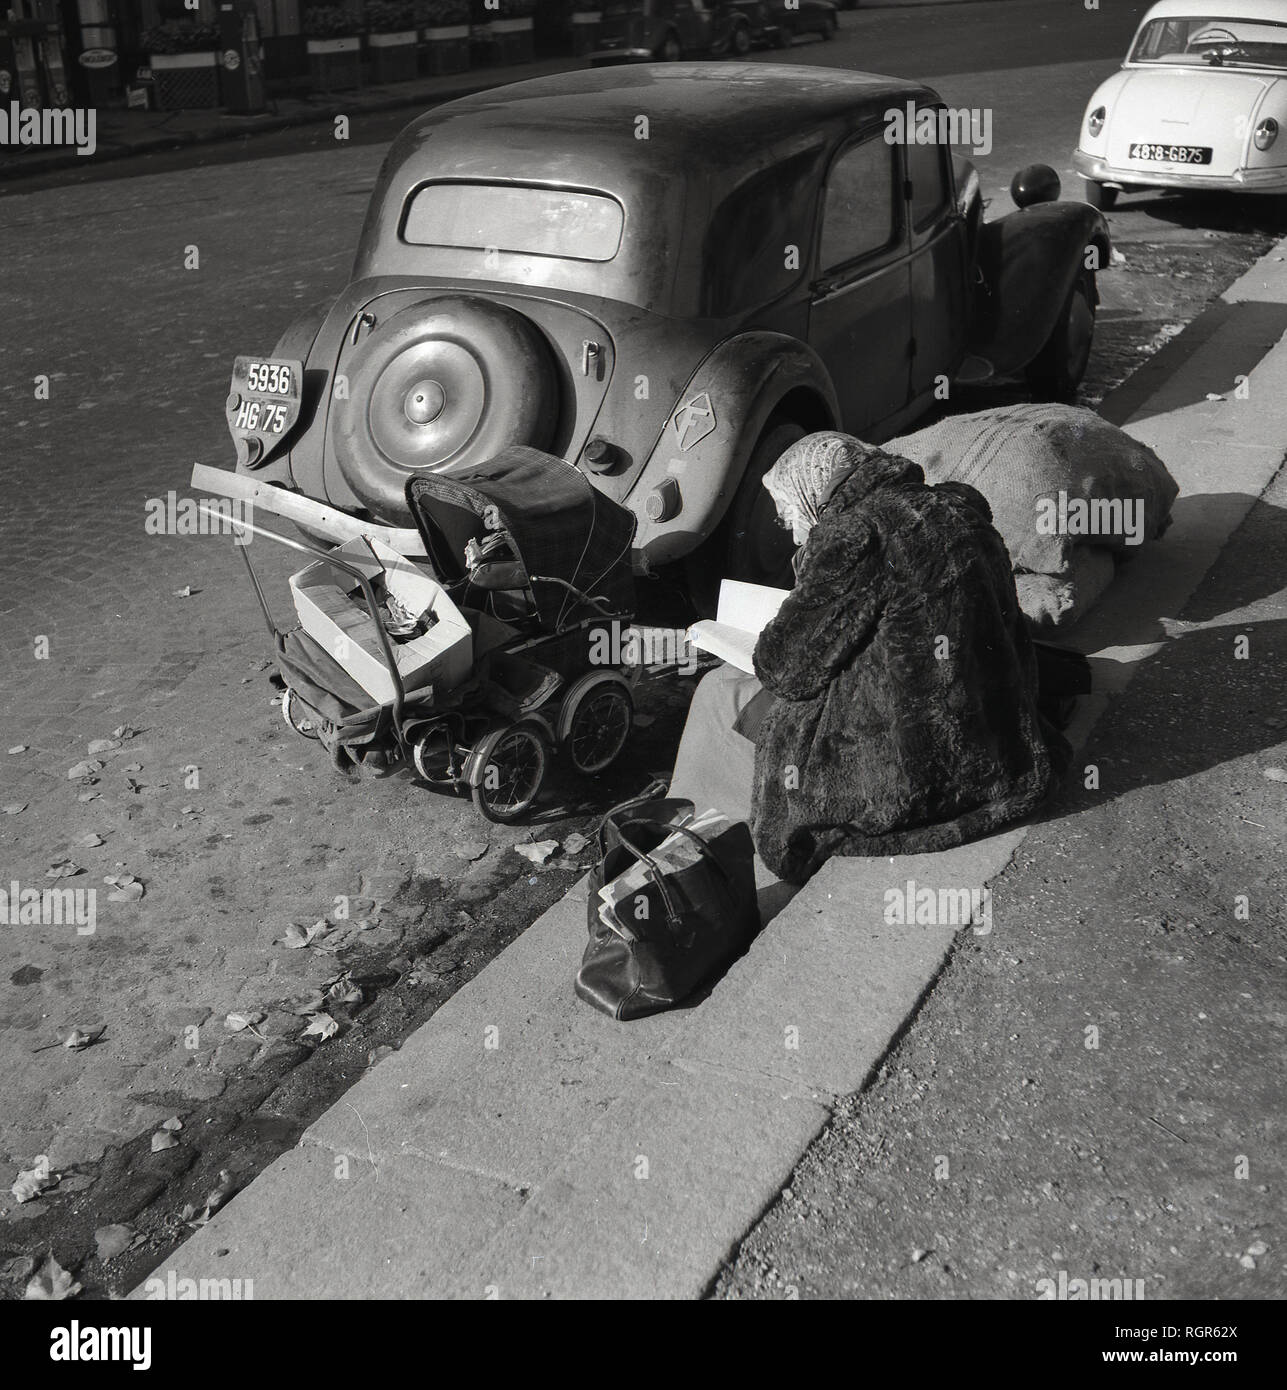 1950s, Paris, France, elderly lady, possibly a bag lady or vagabond, wearing a fur coat sitting beside a road and by parked cars with a small pram and her possessions with whilst reading a book. - Stock Image